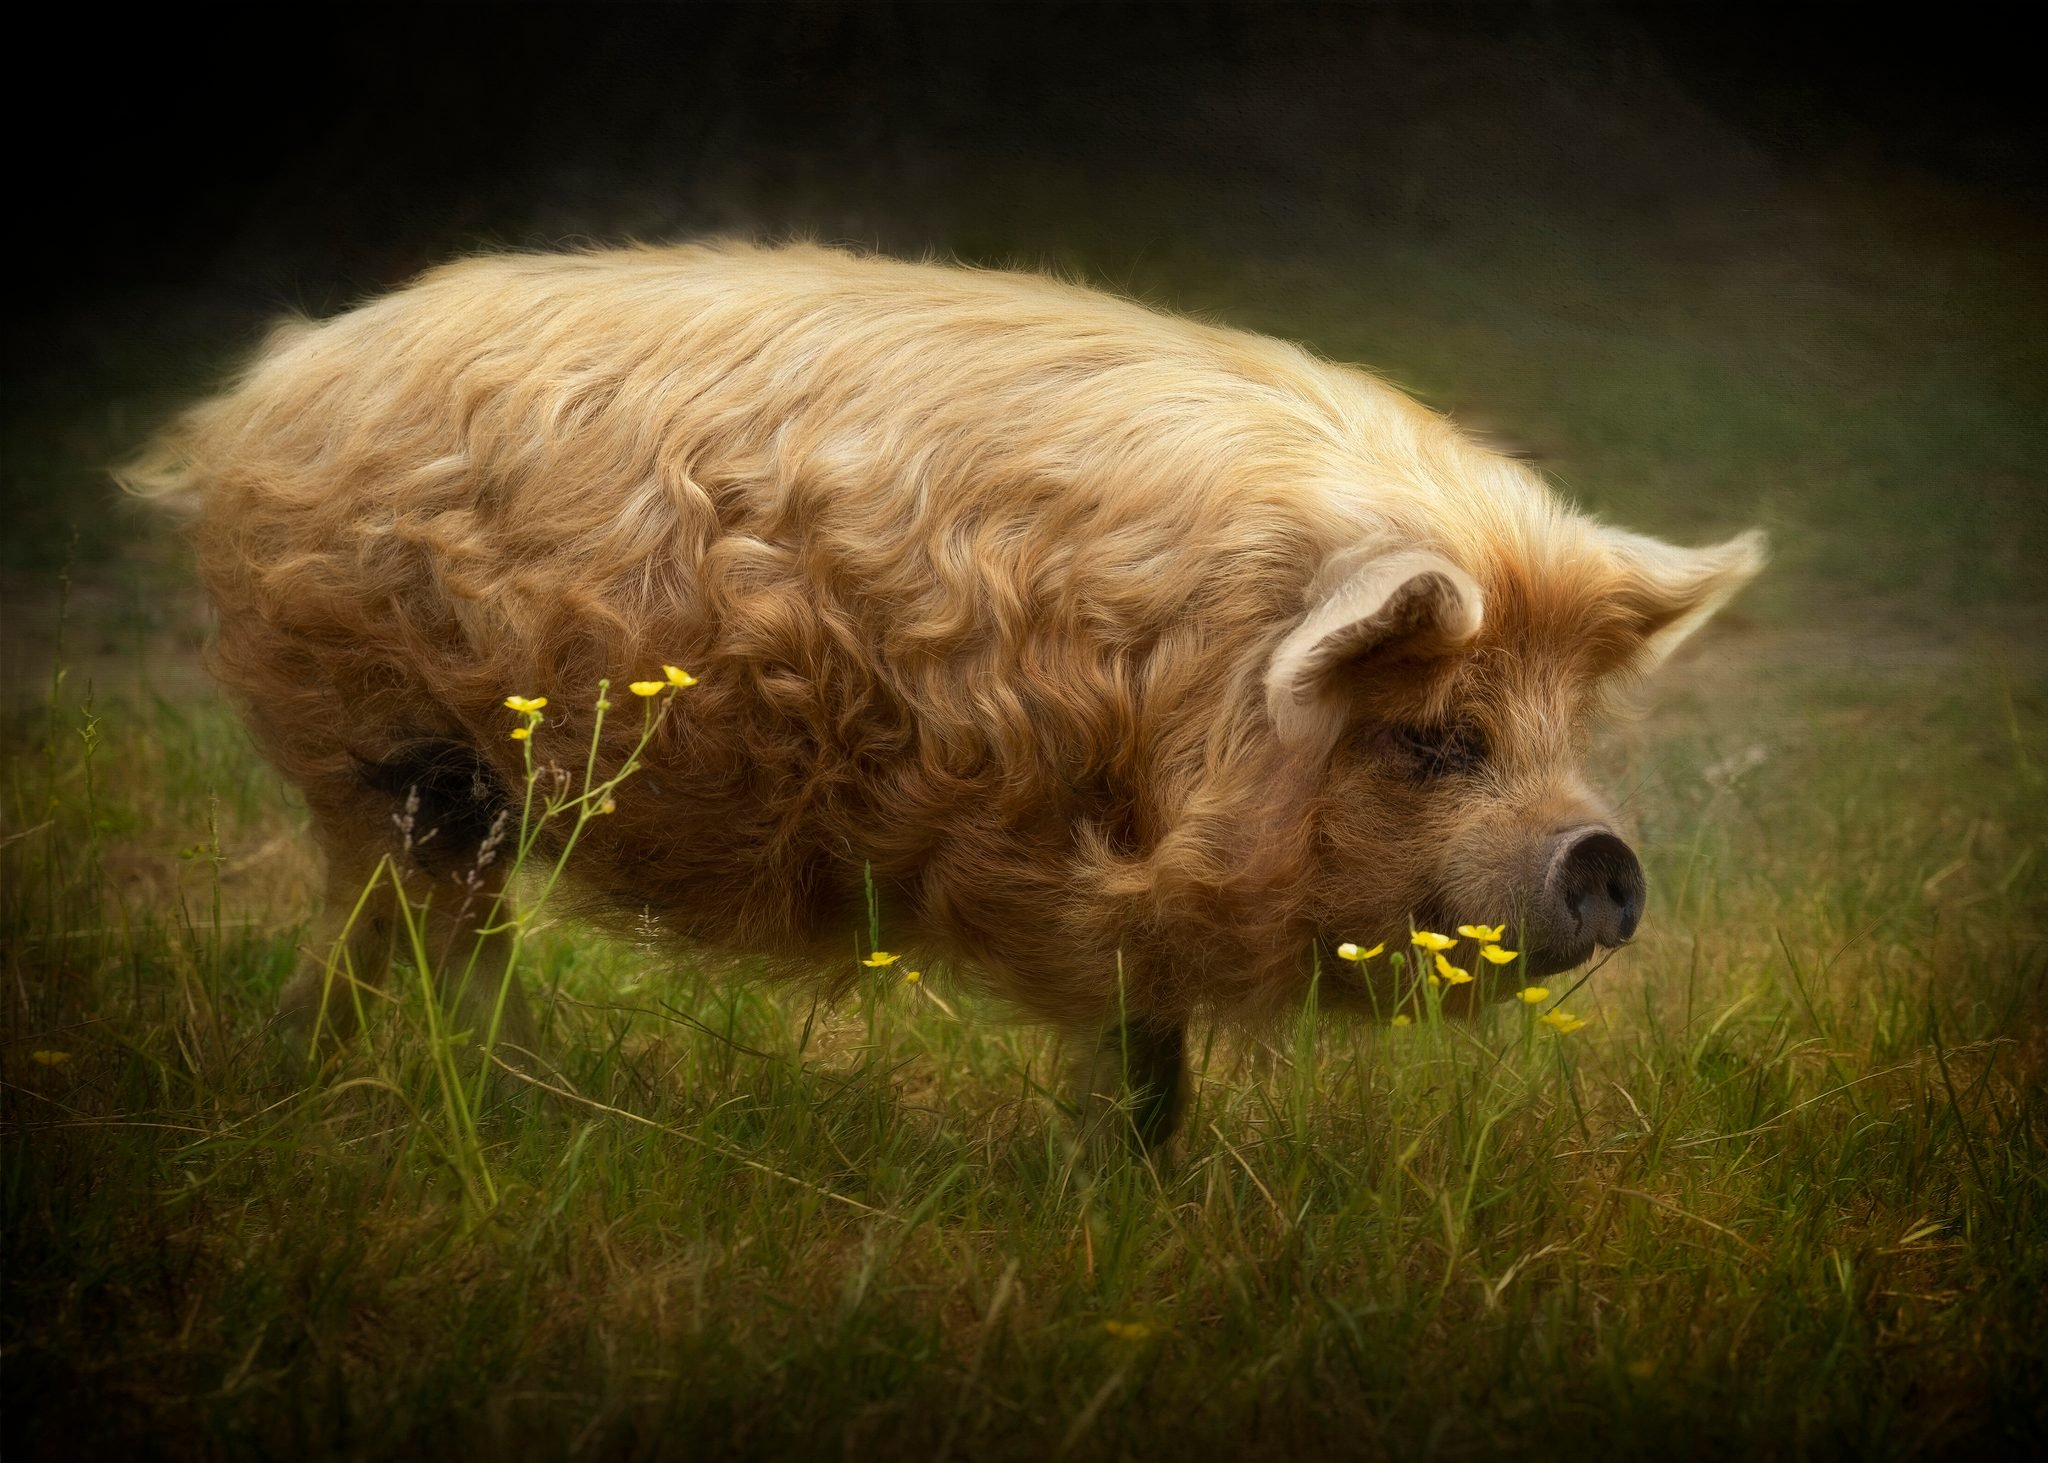 Kunekune pig with golden locks strolls through pasture